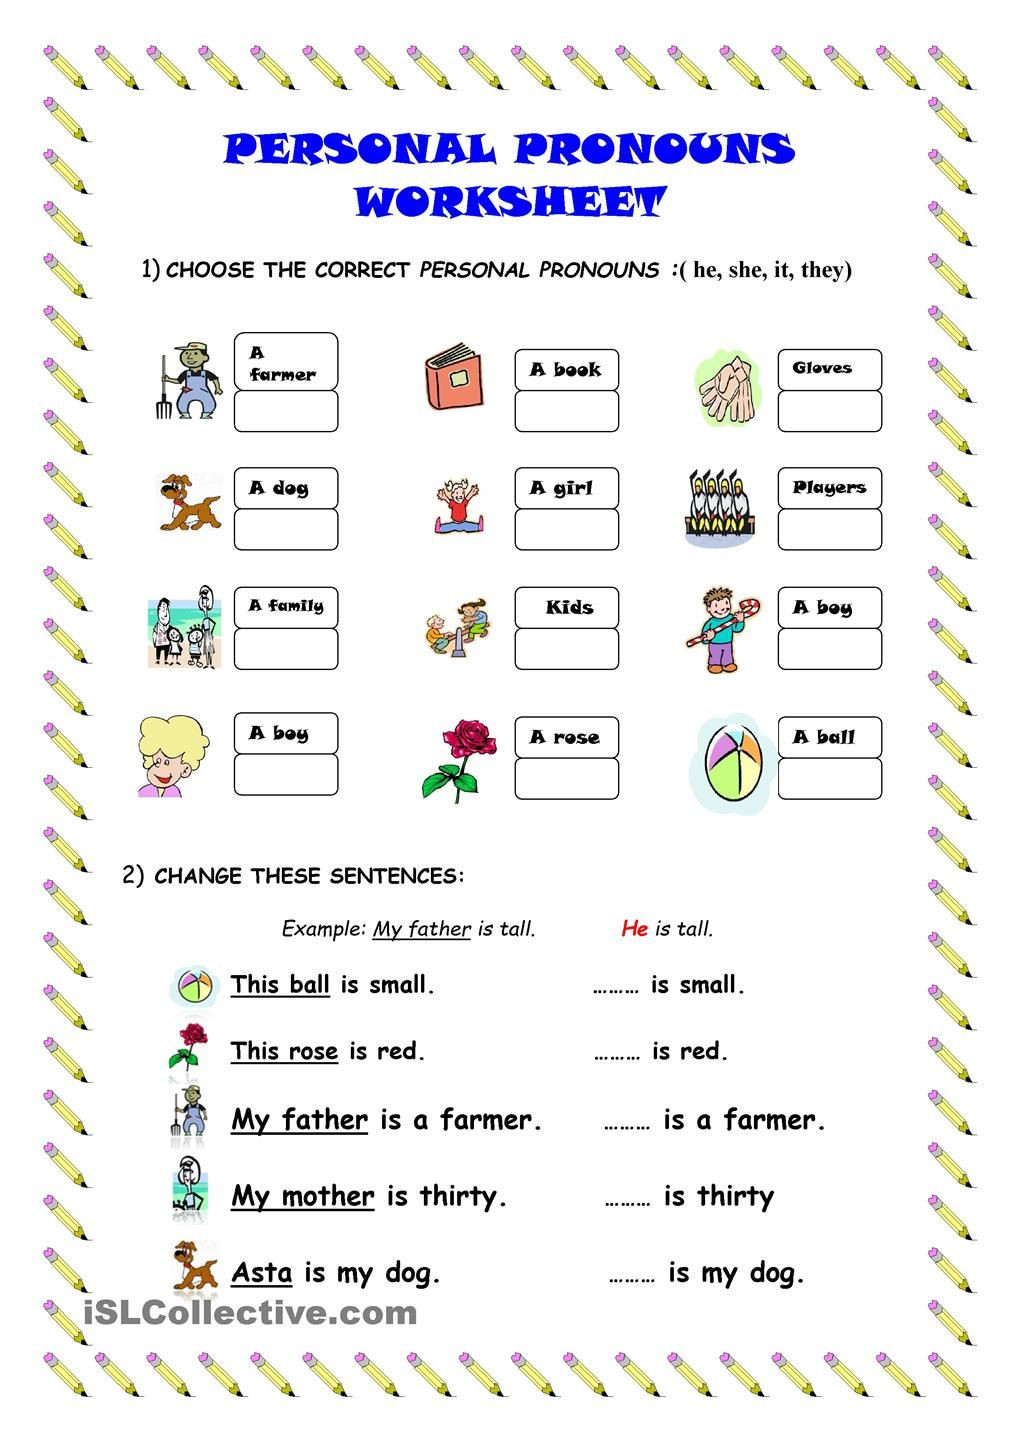 Pronouns Worksheets 5th Grade Personal Pronouns Worksheet Worksheets Learning Function